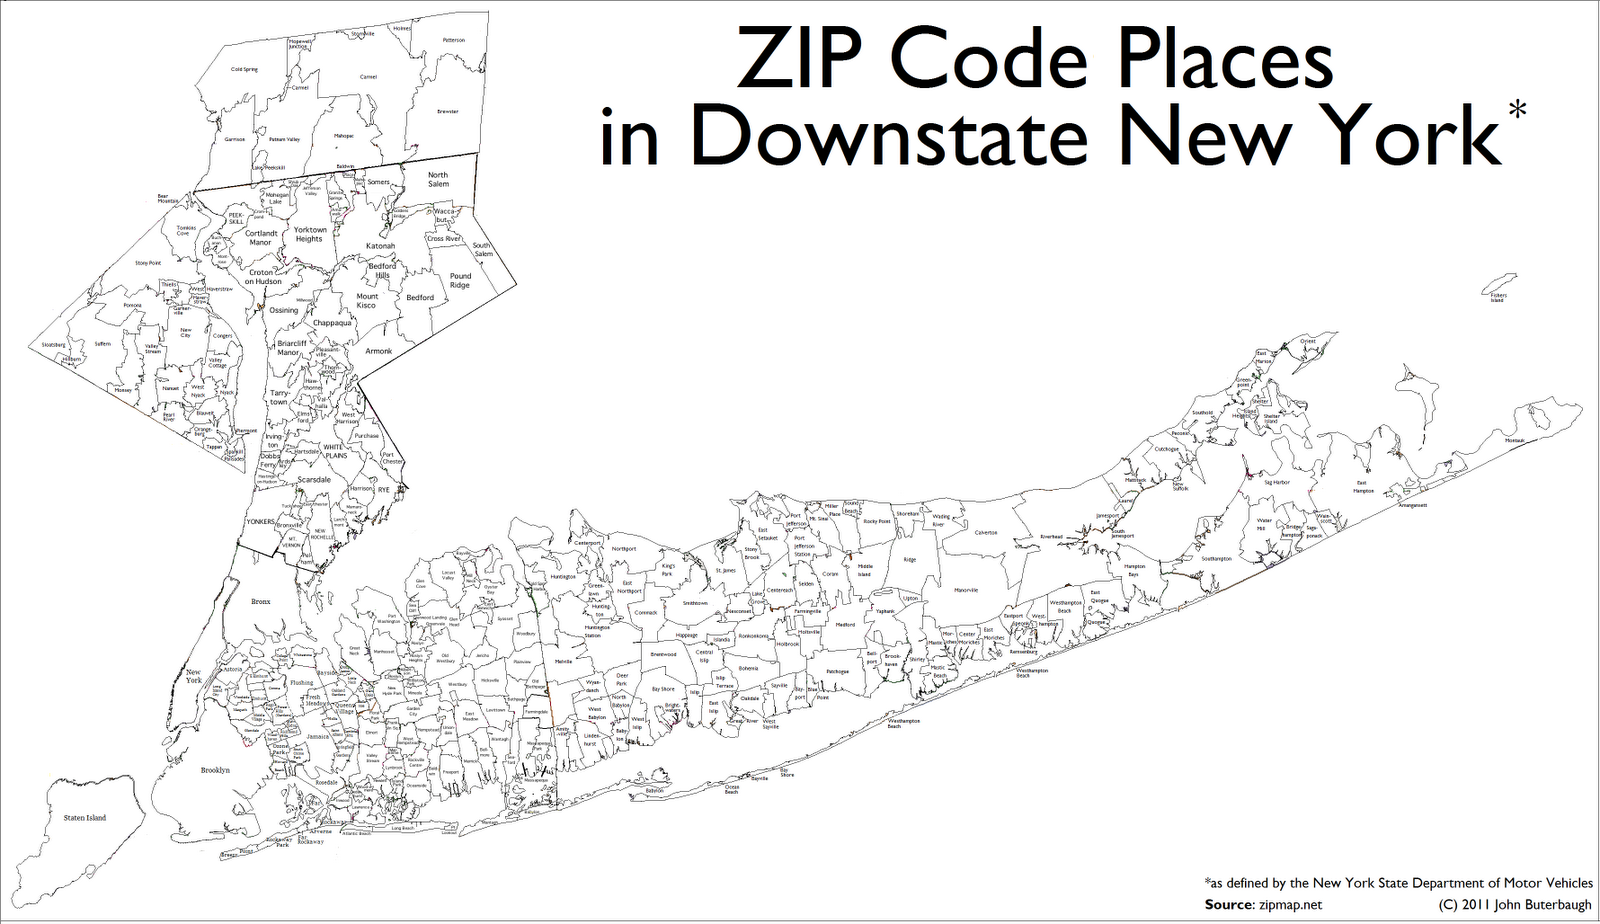 ZIP Codes Are A System Of Postal Codes Used By The United States - Us counties by zip